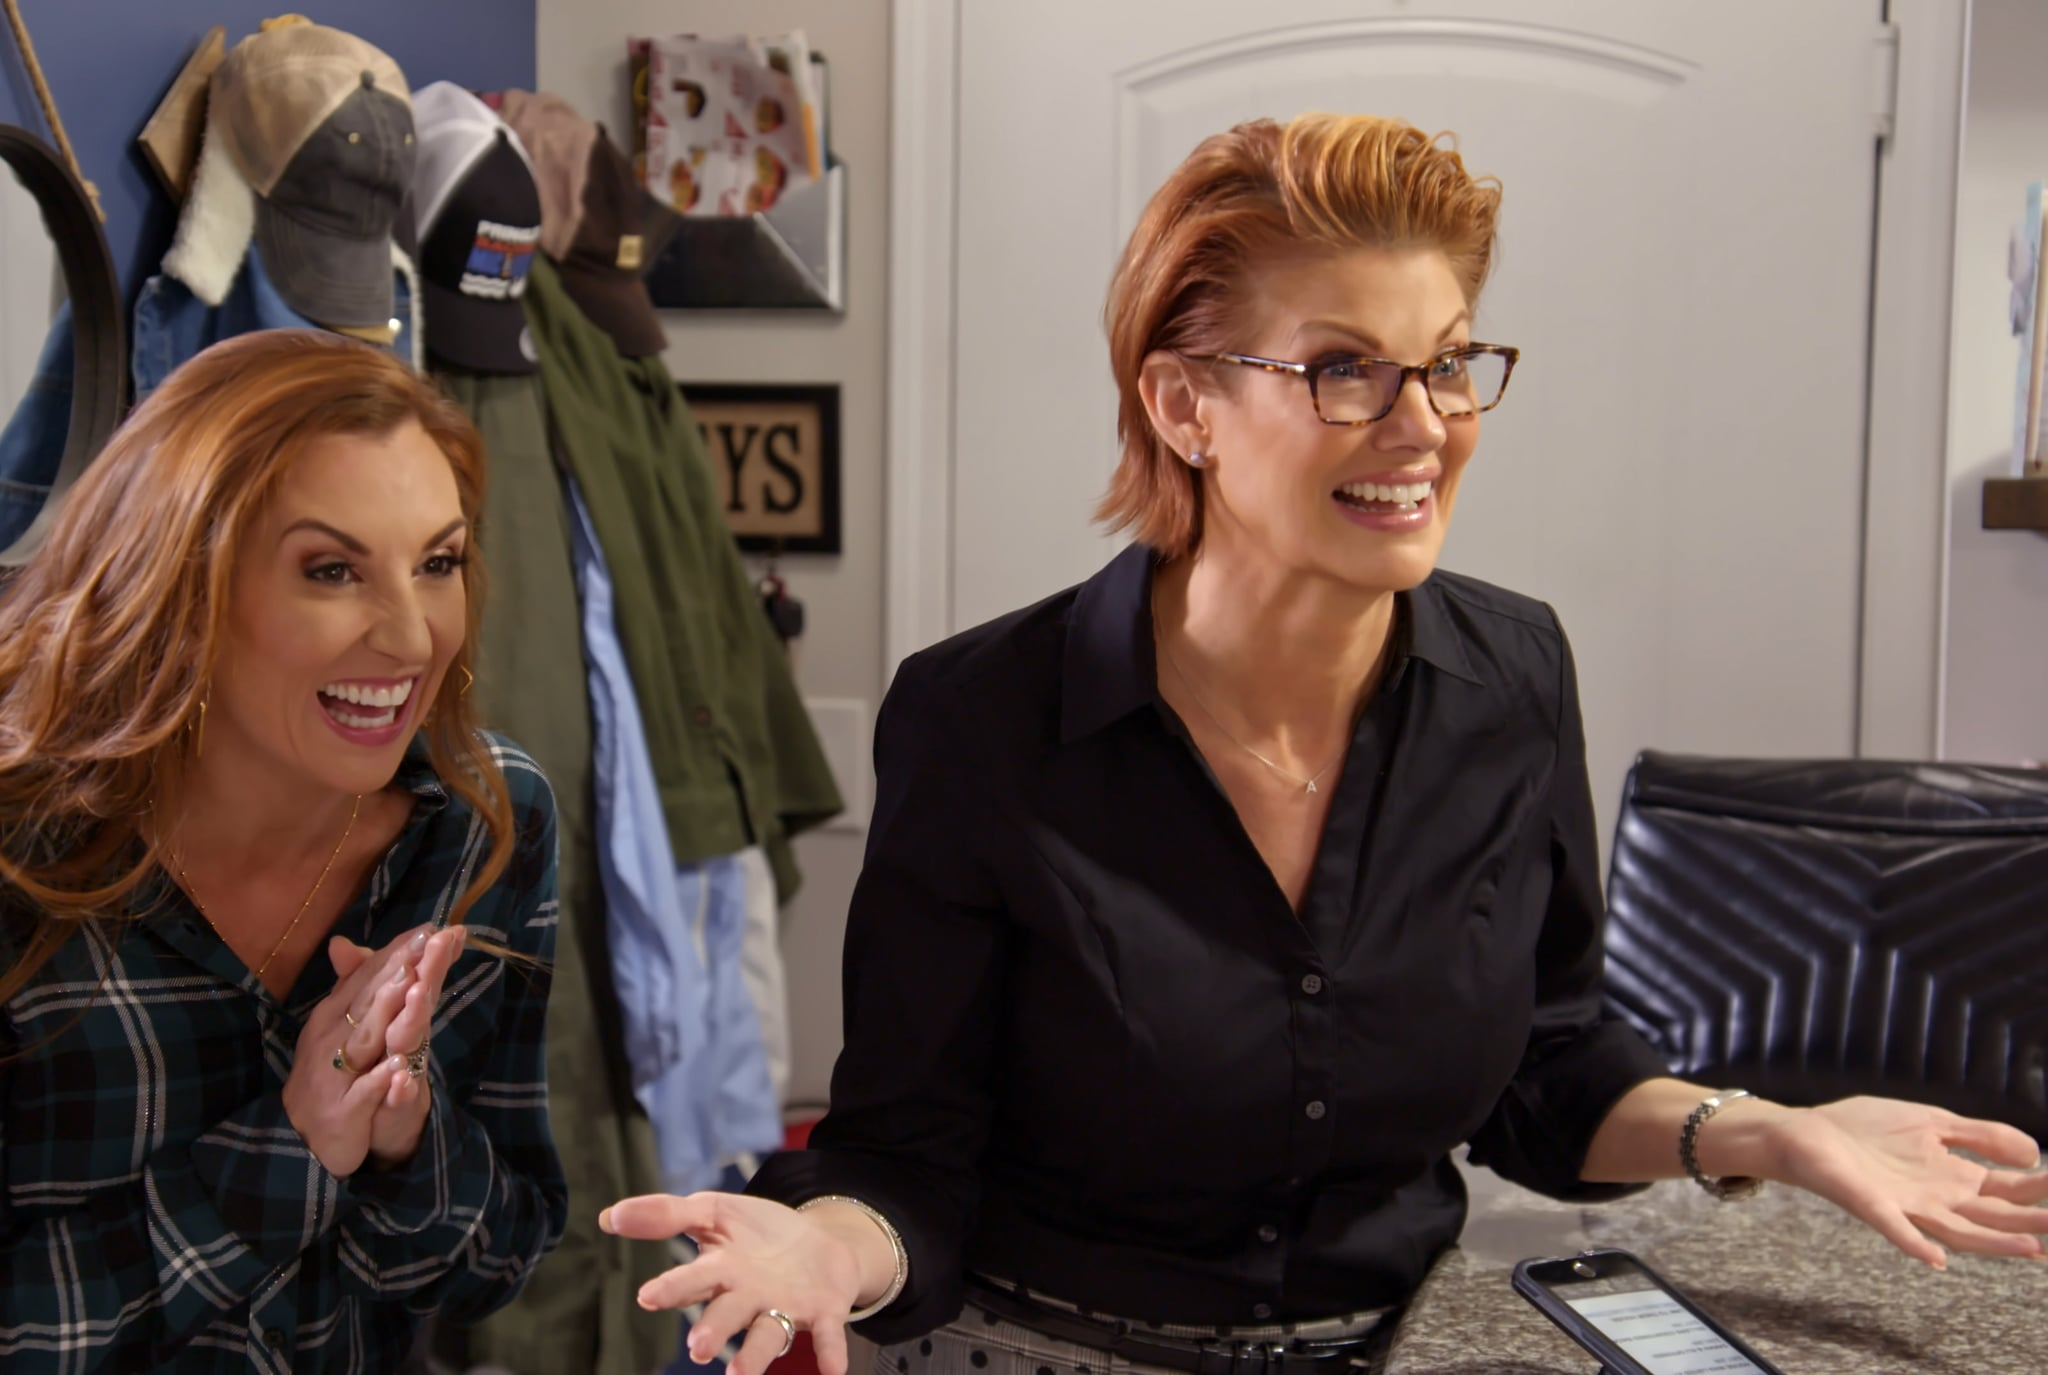 MARRIAGE OR MORTGAGE (L to R) SARAH MILLER and NICHOLE HOLMES in Episode